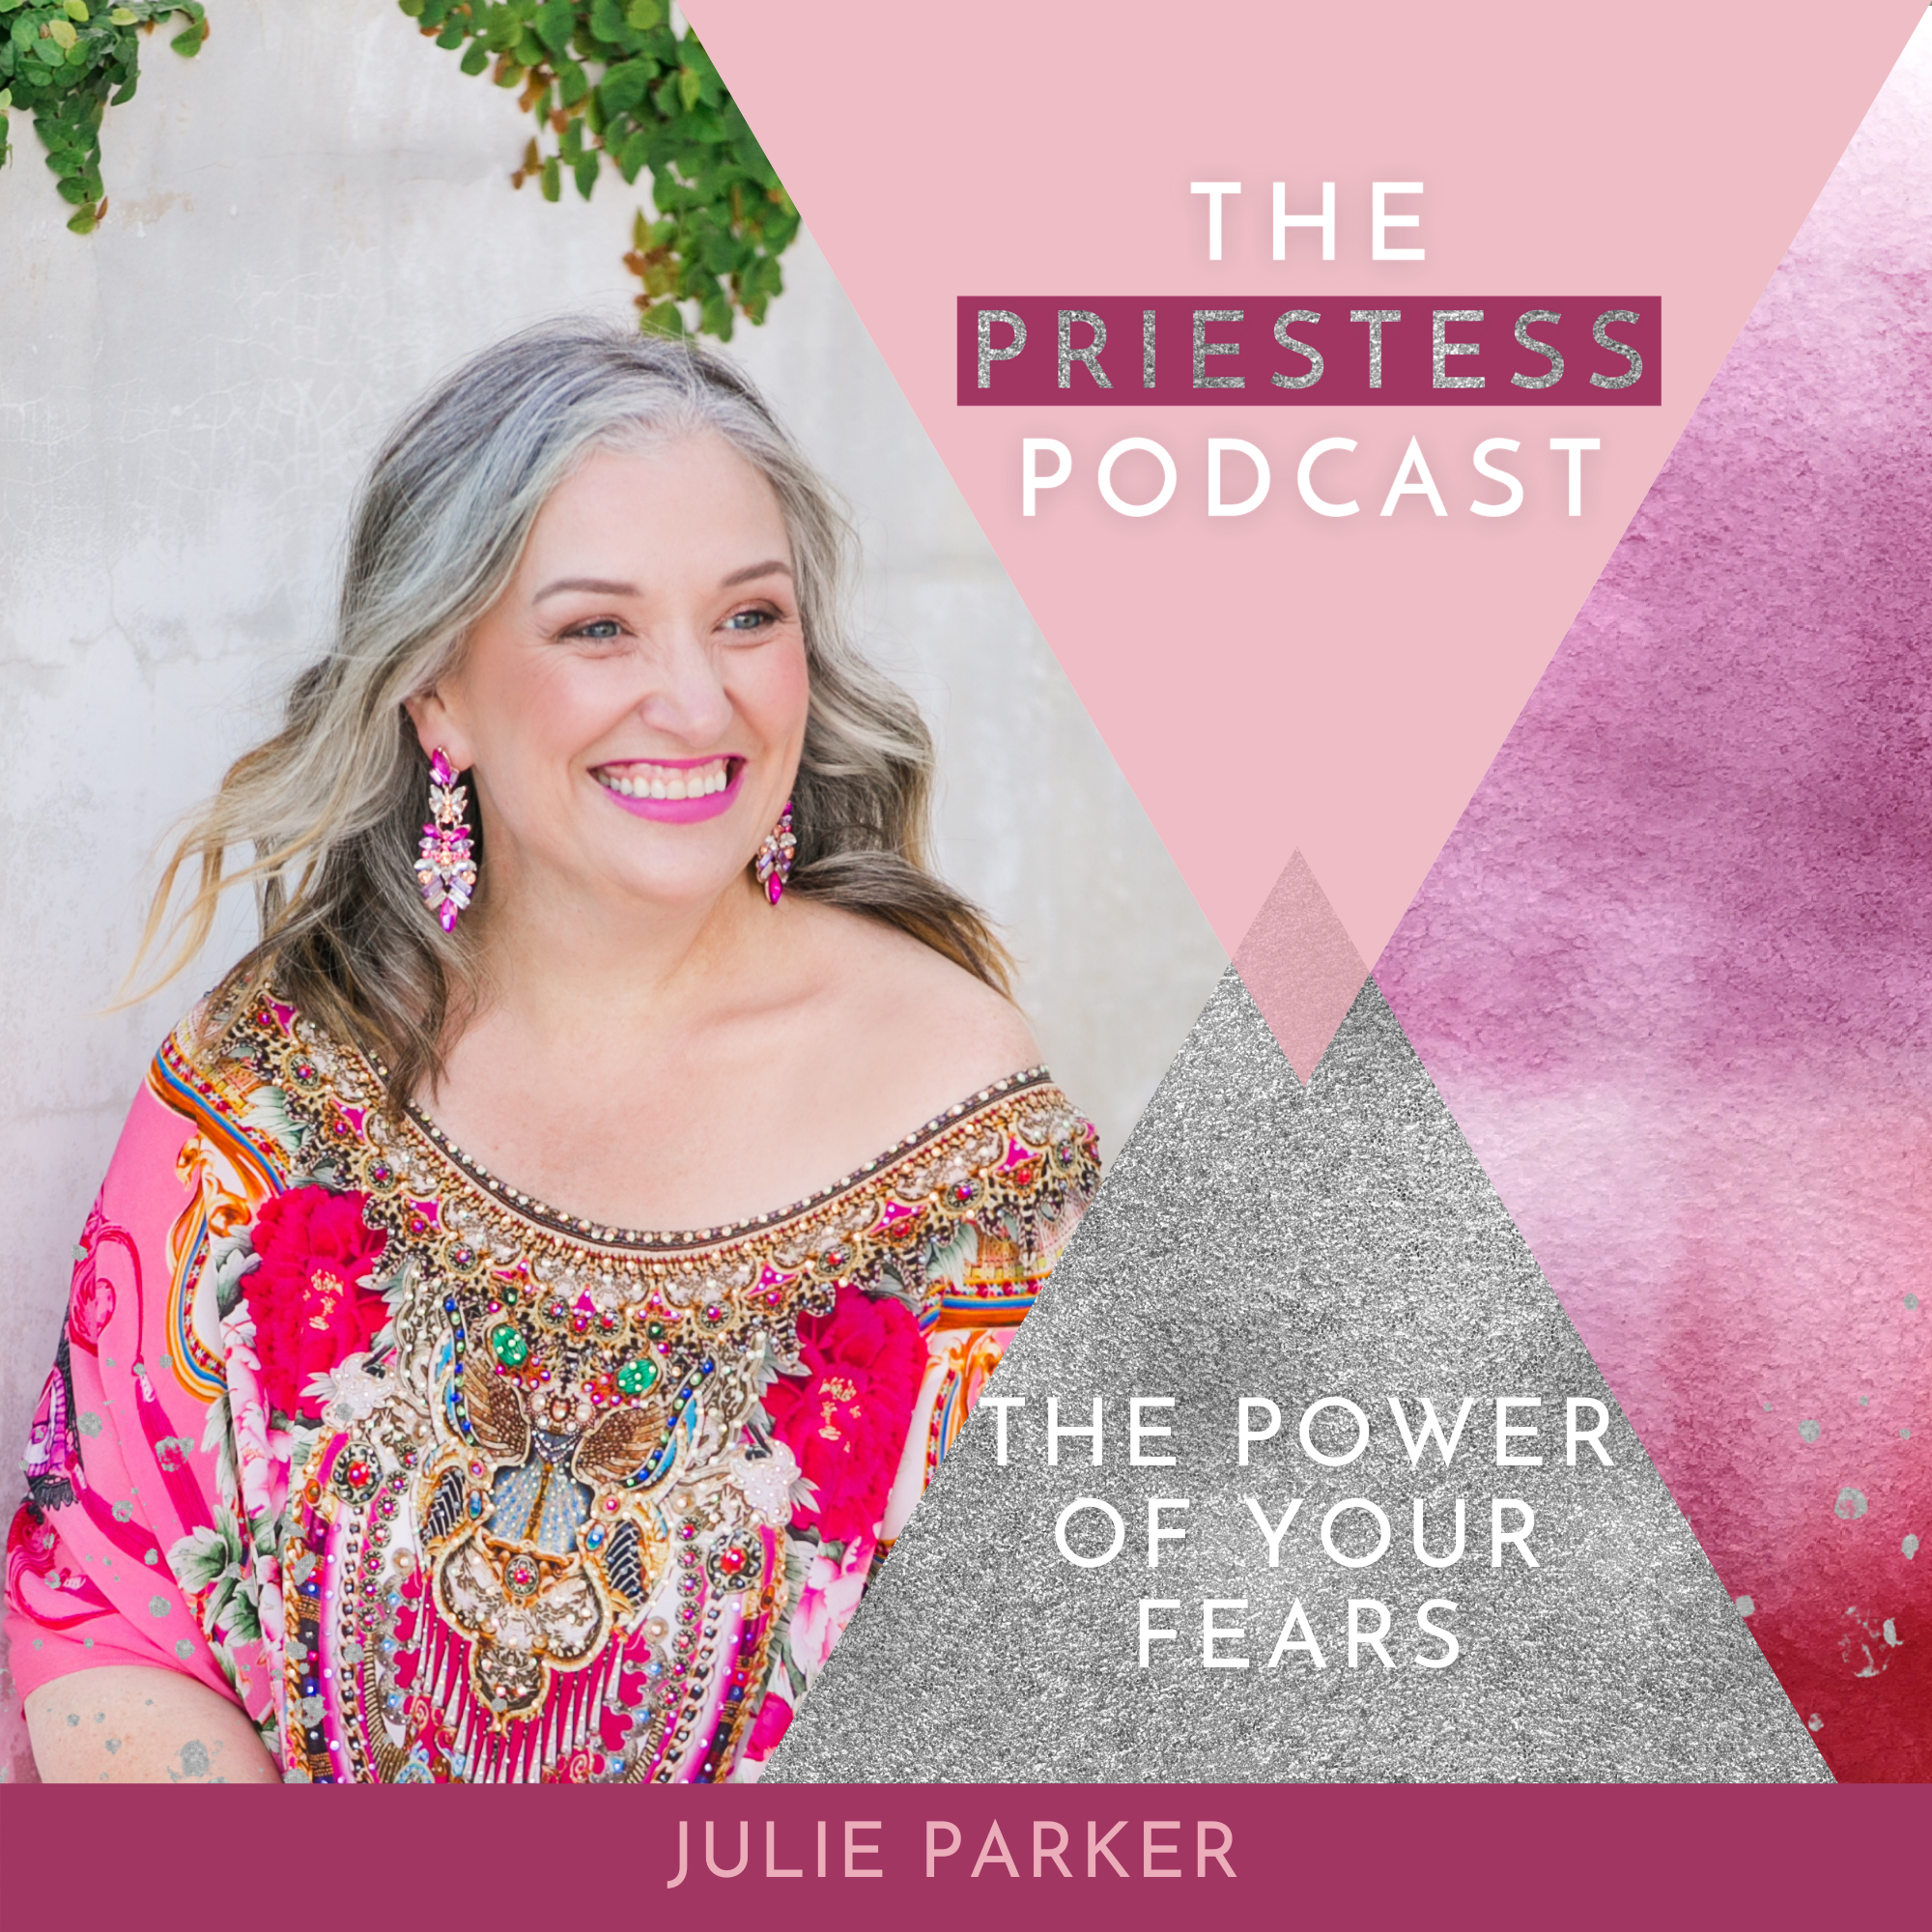 Julie Parker on The Power of Your Fears